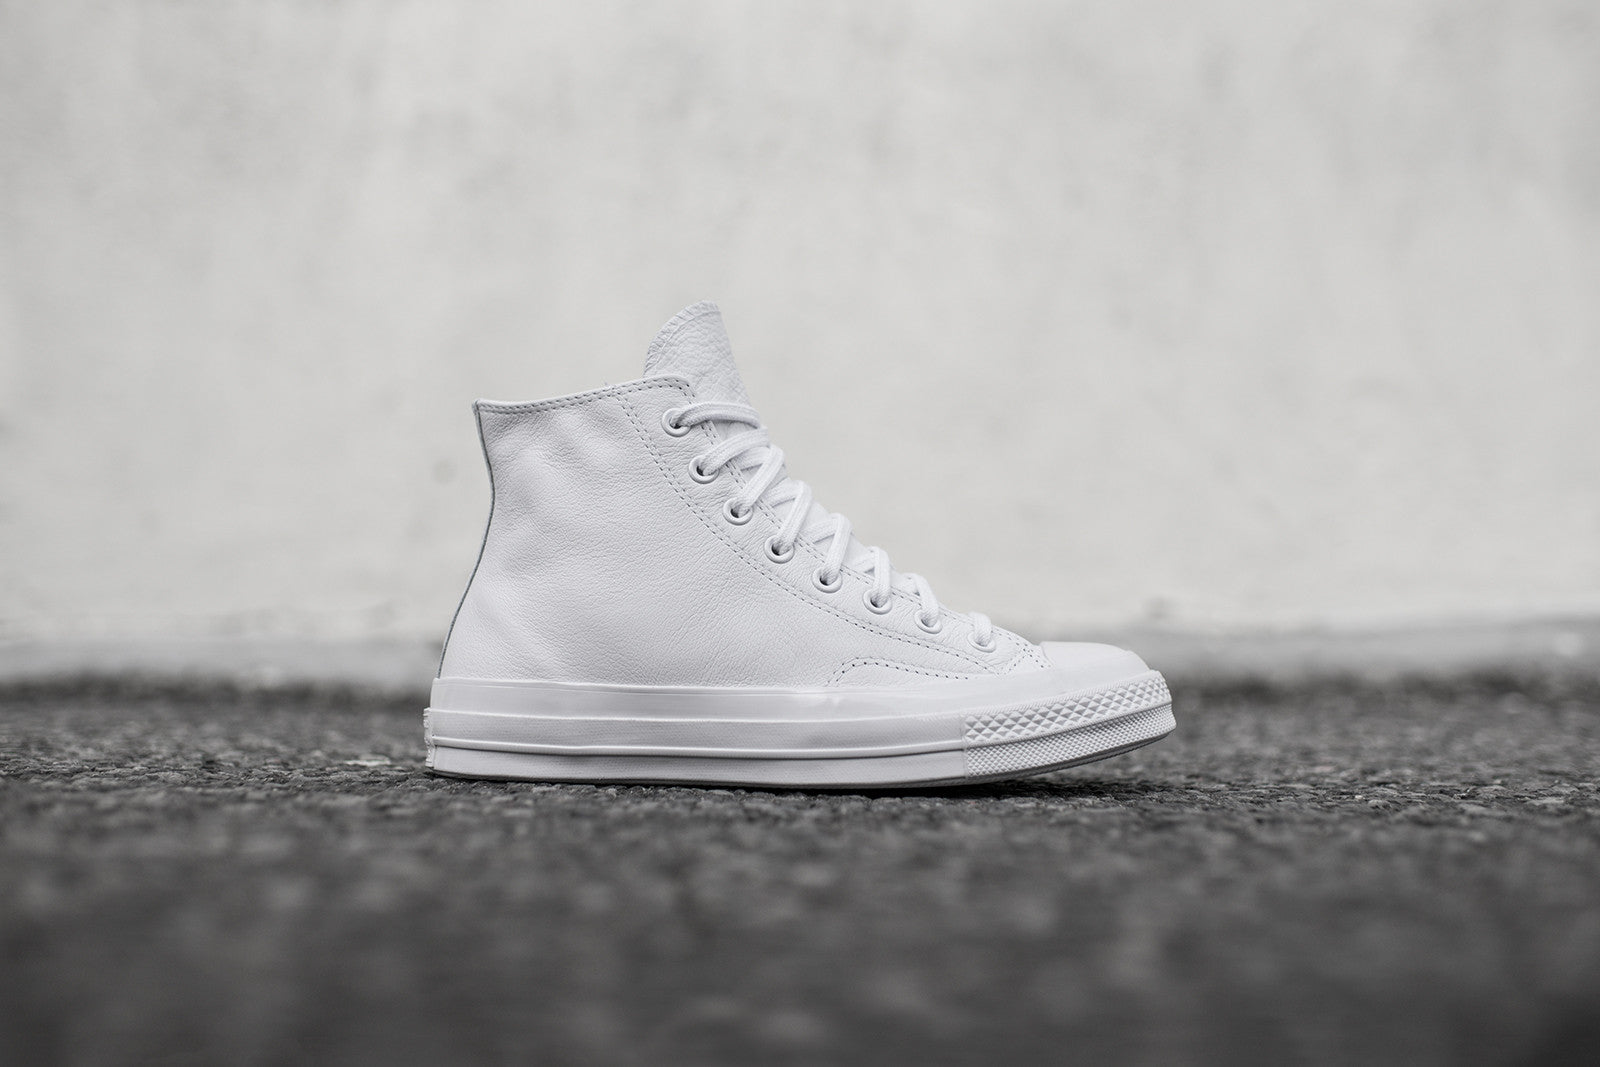 4c41f34f5cff Converse Chuck Taylor All Star  70 Mono High   Low Pack. April 11